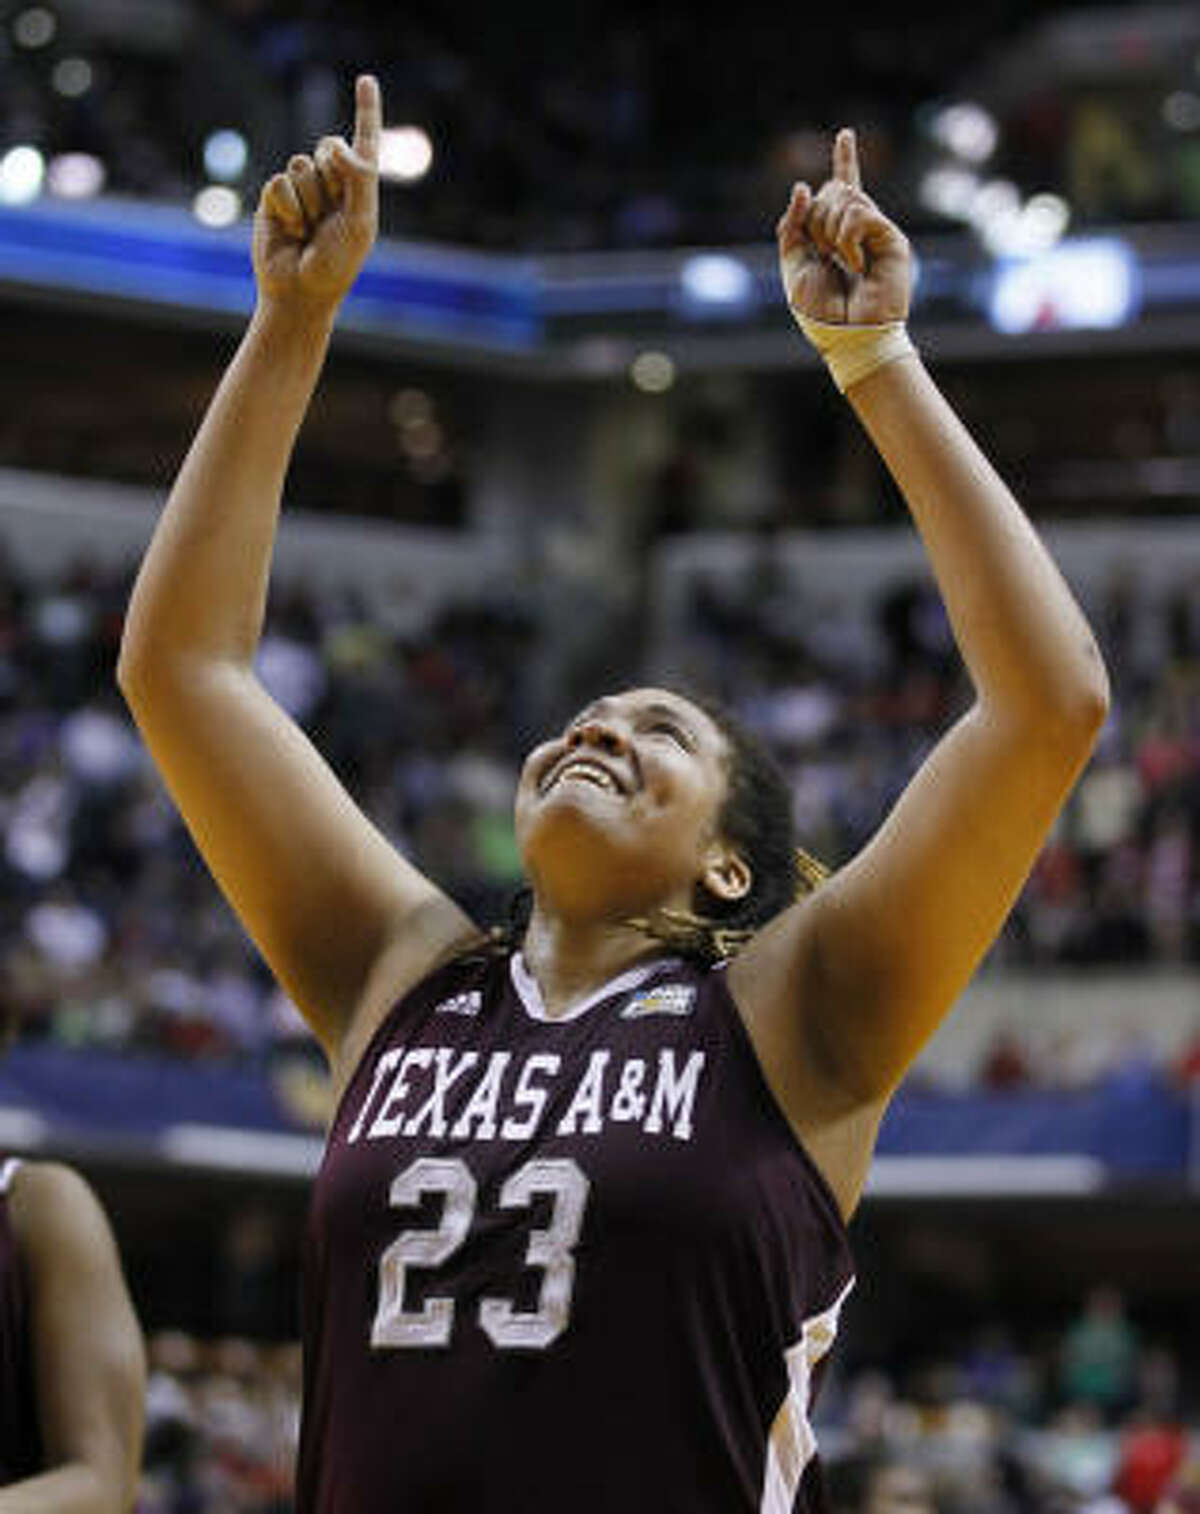 Texas A&M's Danielle Adams celebrates the win over Stanford on Sunday.